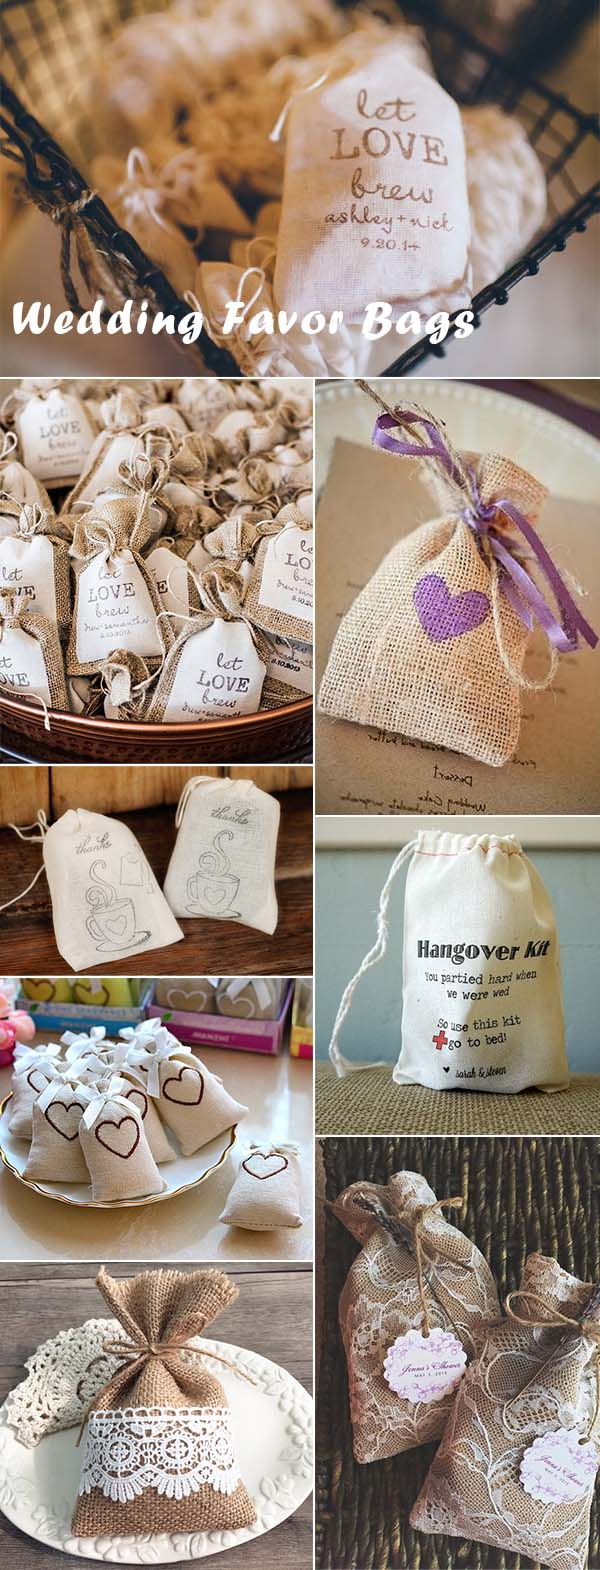 Rustic Wedding Favor Bags Ideas